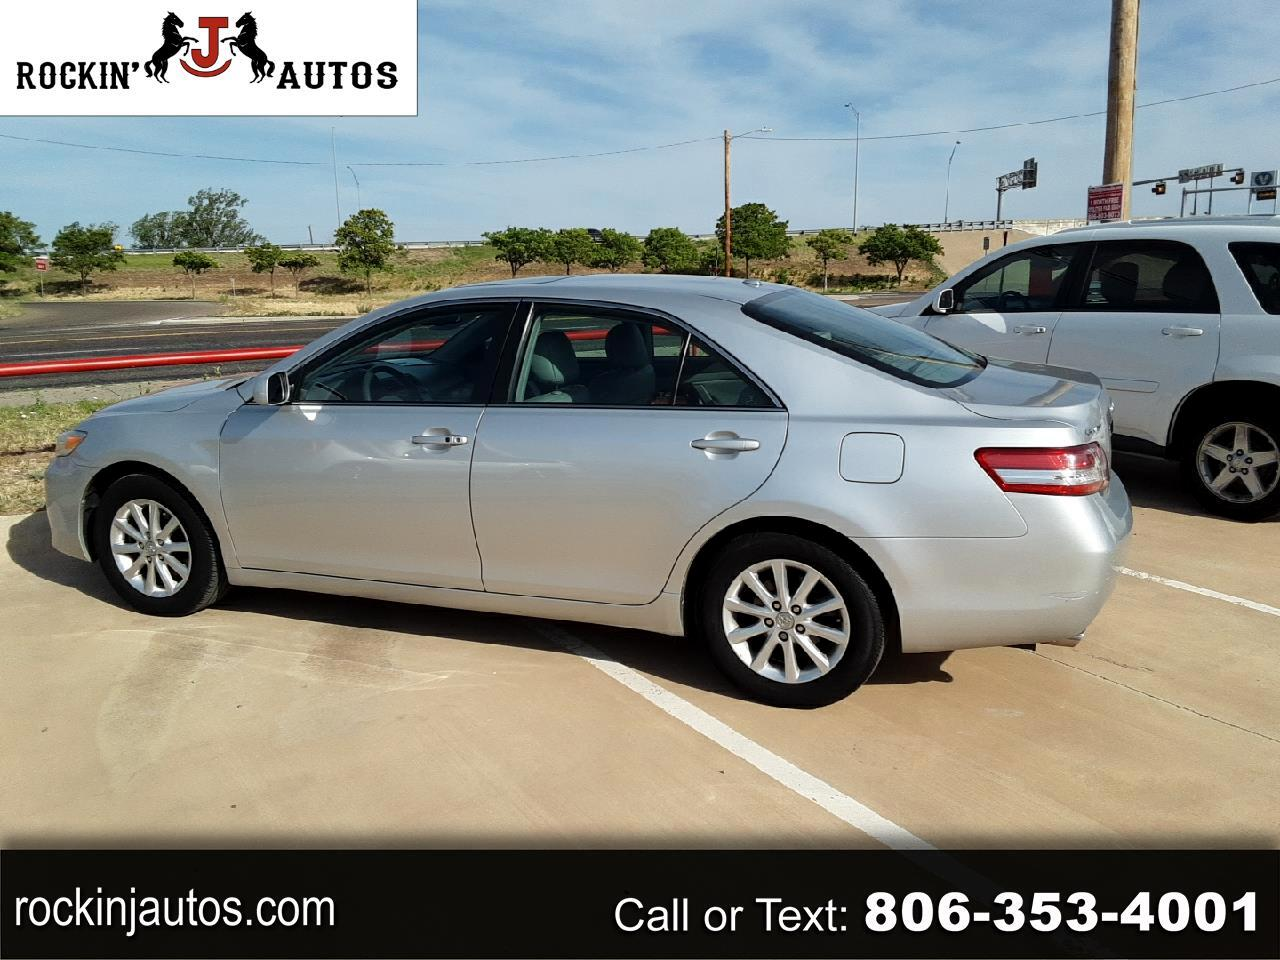 Toyota Camry 4dr Sdn V6 Auto XLE (Natl) 2011